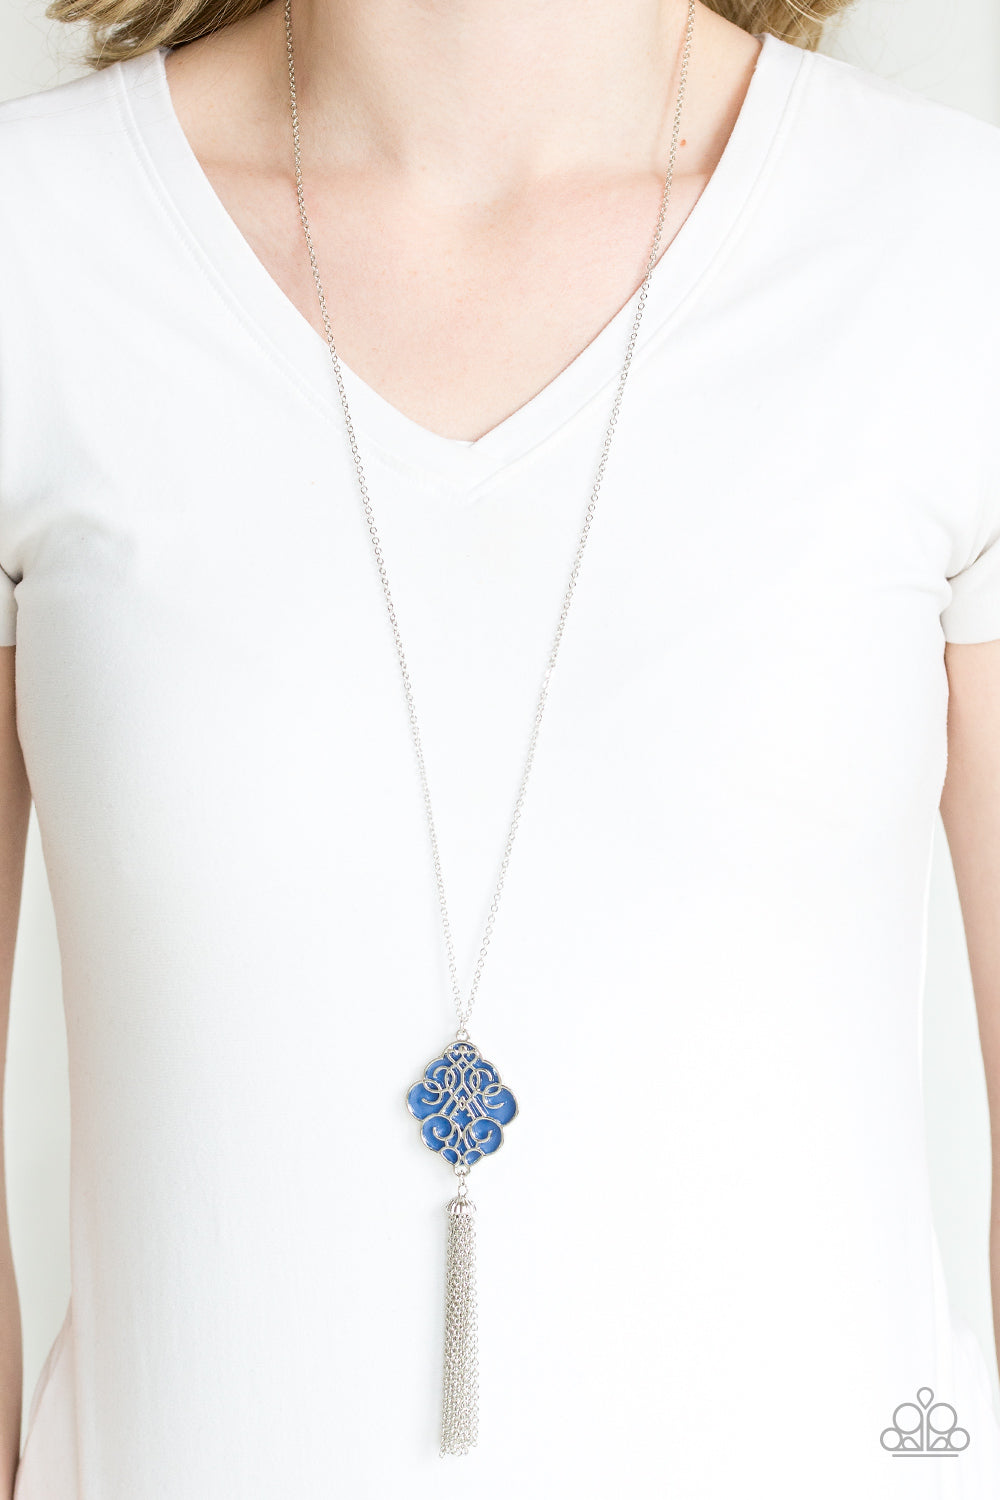 Malibu Mandala - Blue - Necklace